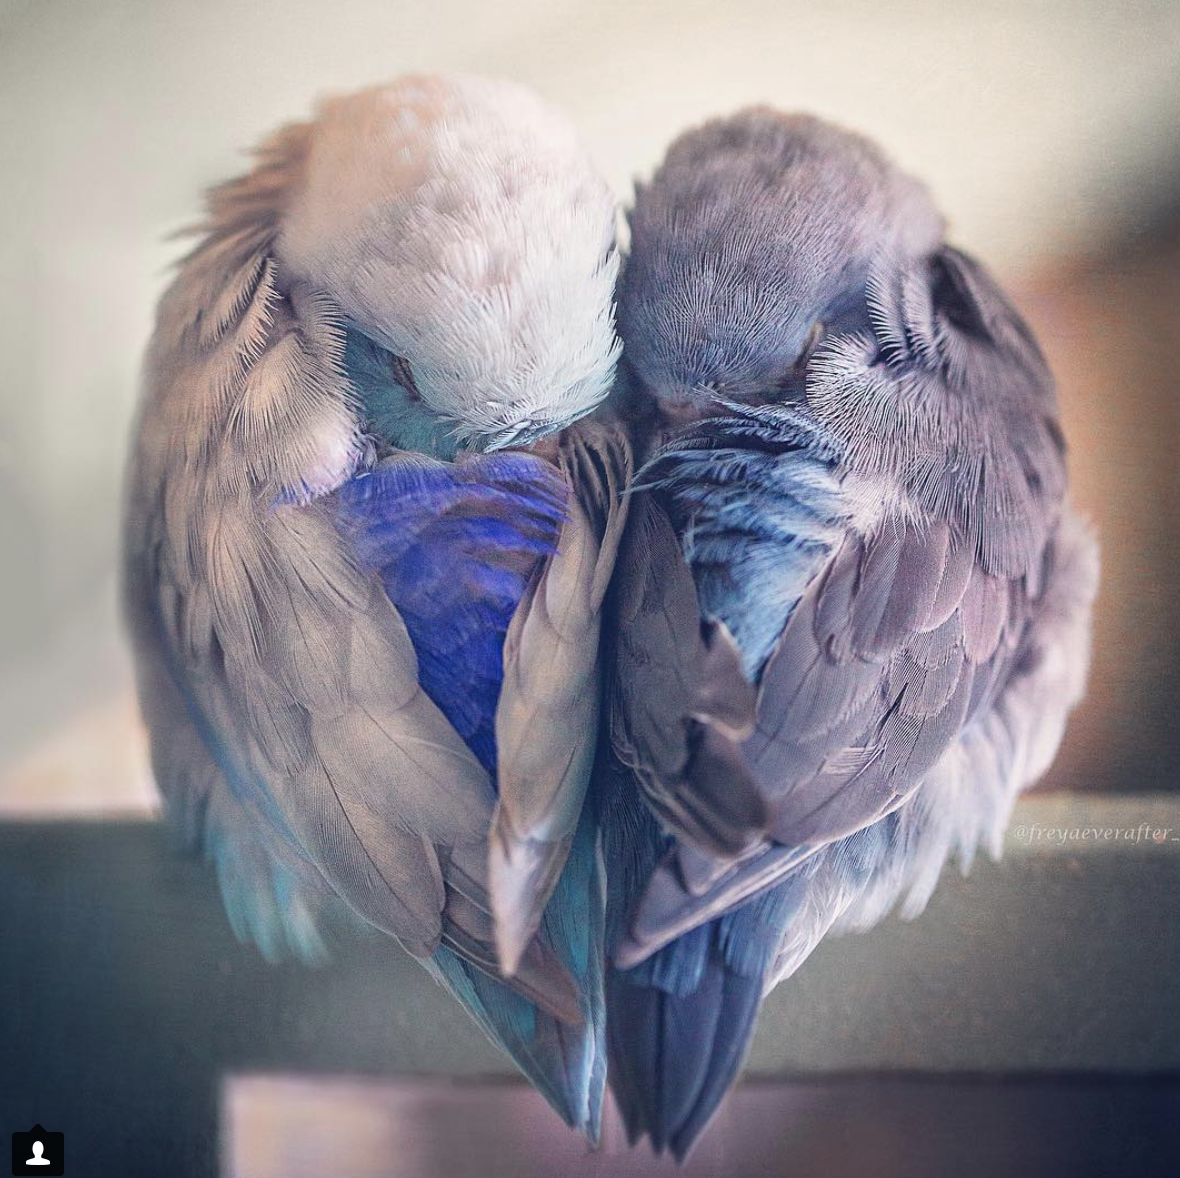 loyalty - a strong feeling of support or allegiance.*image from @freyaeverafter_